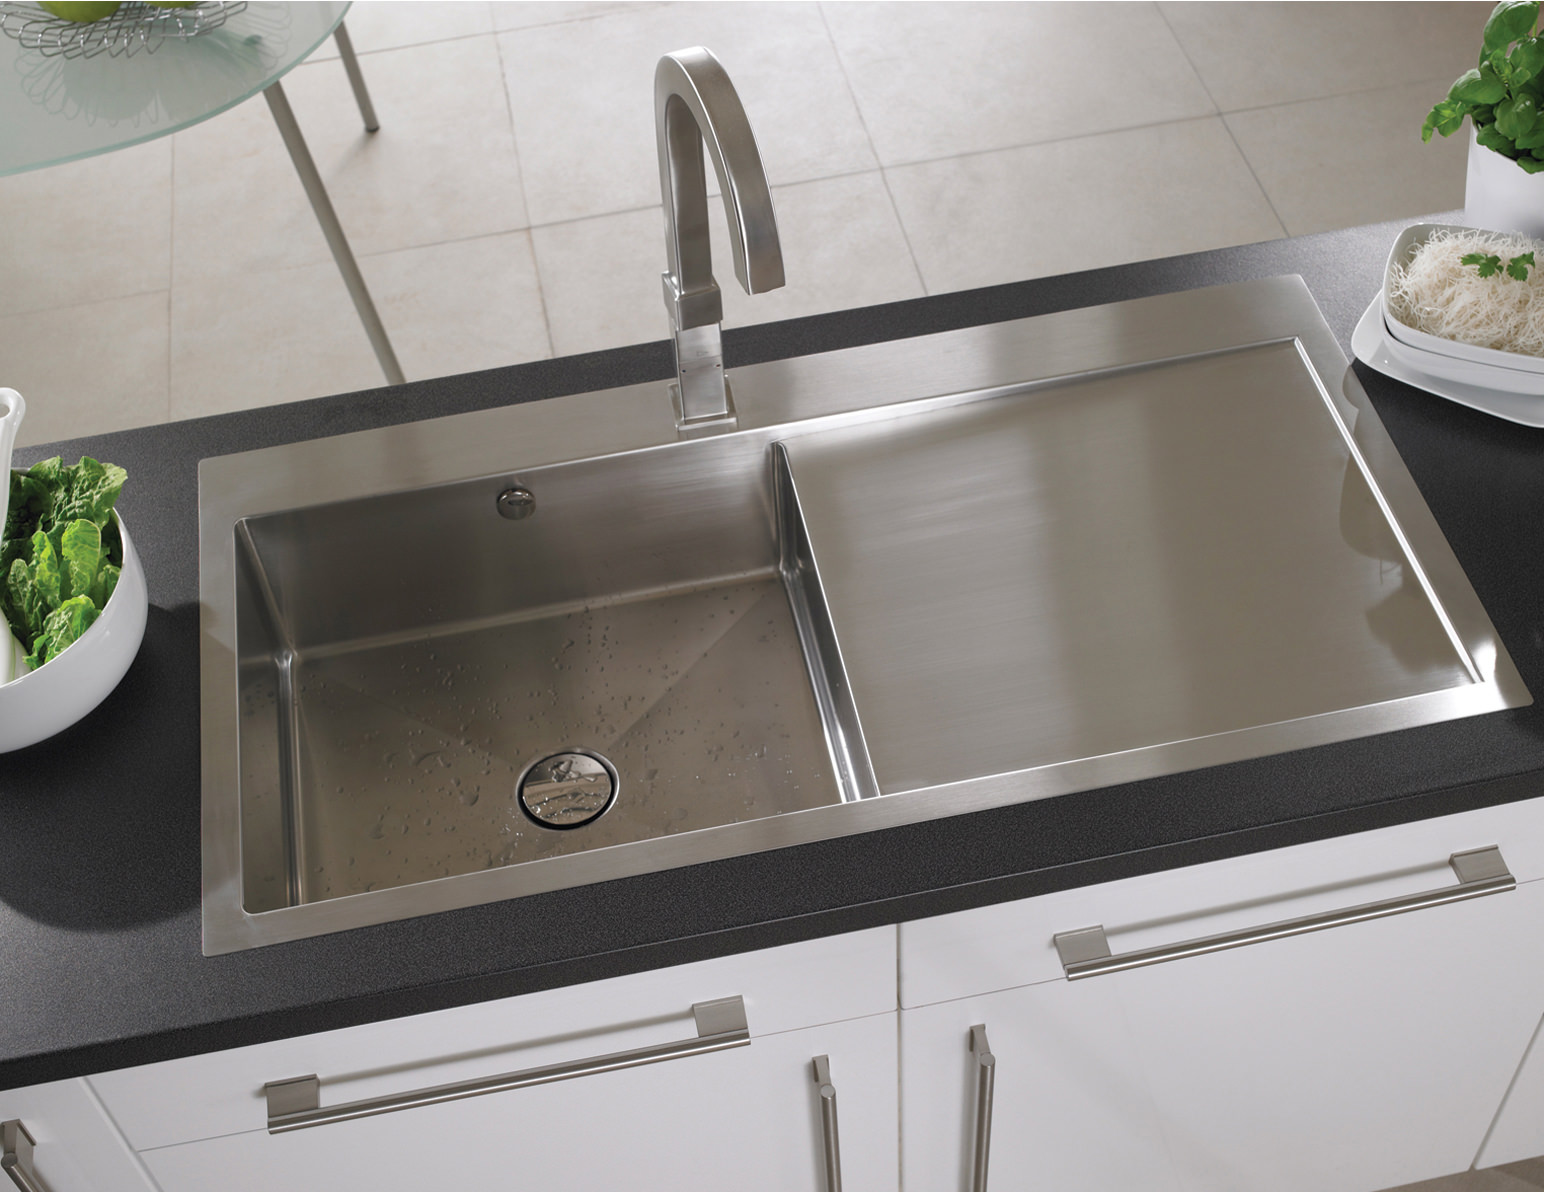 Large Stainless Steel Sinks Uk : ... image of Astracast Vantage 1.0 Bowl Brushed Stainless Steel Inset Sink